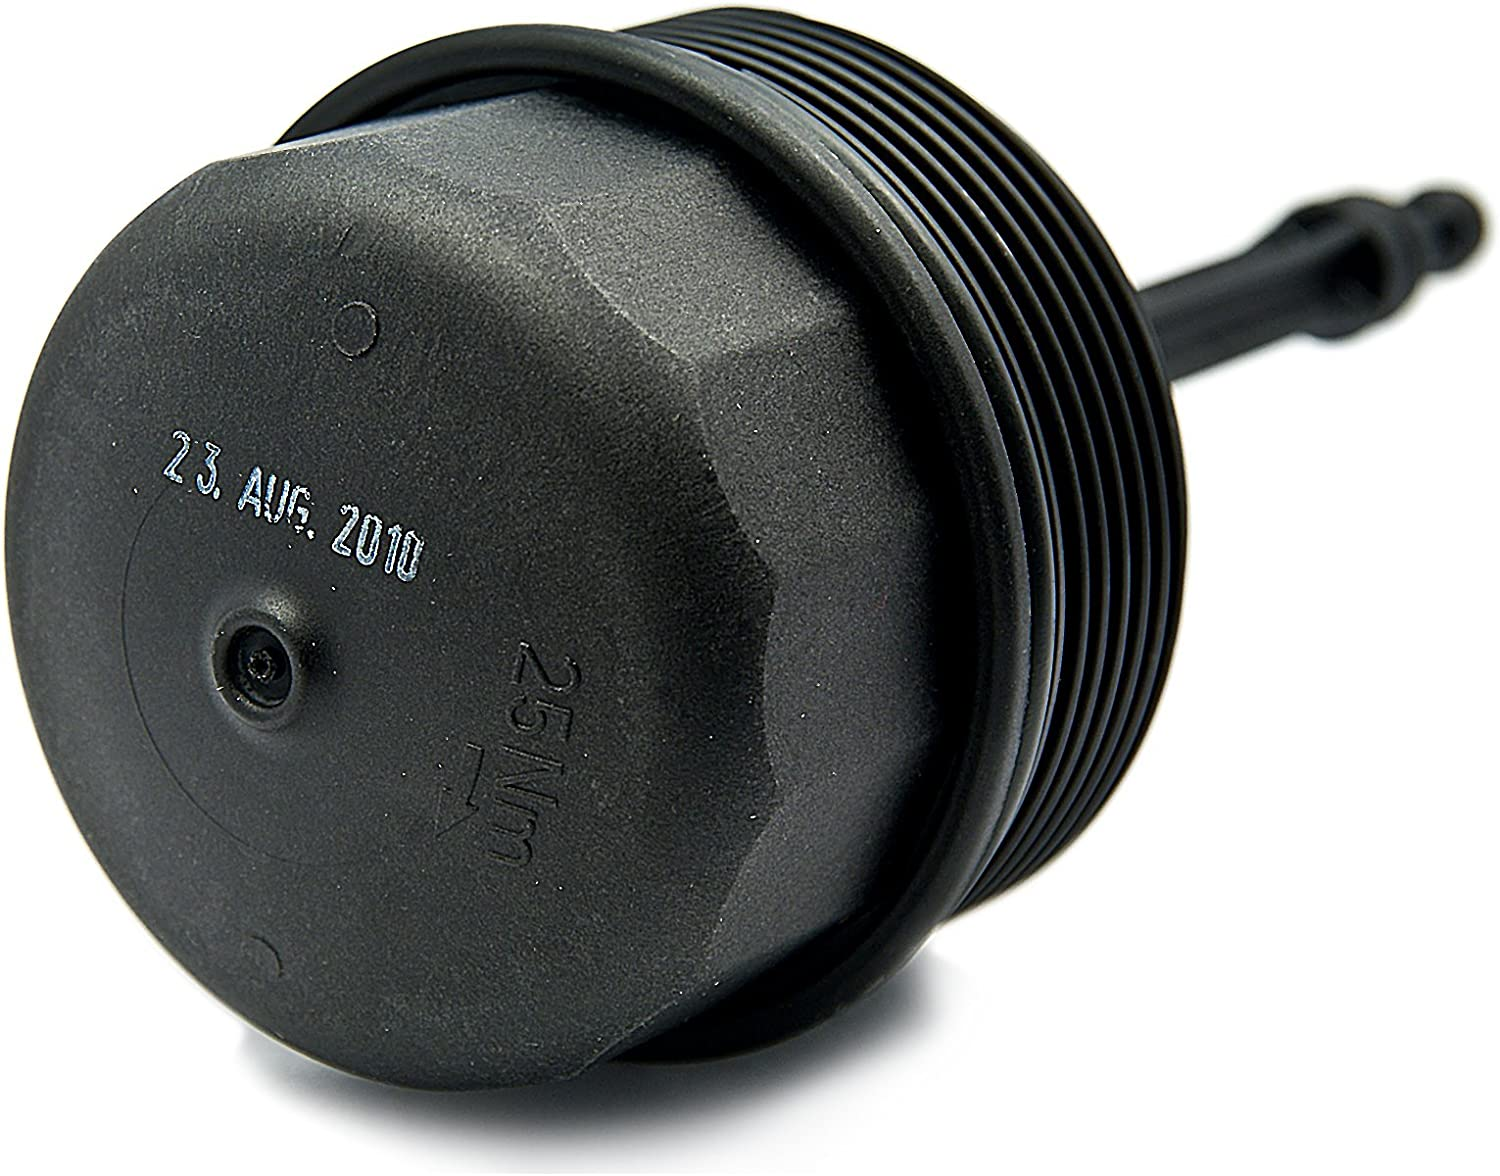 Cover Cap for Oil Filter Housing URO Parts 11 42 7 525 334